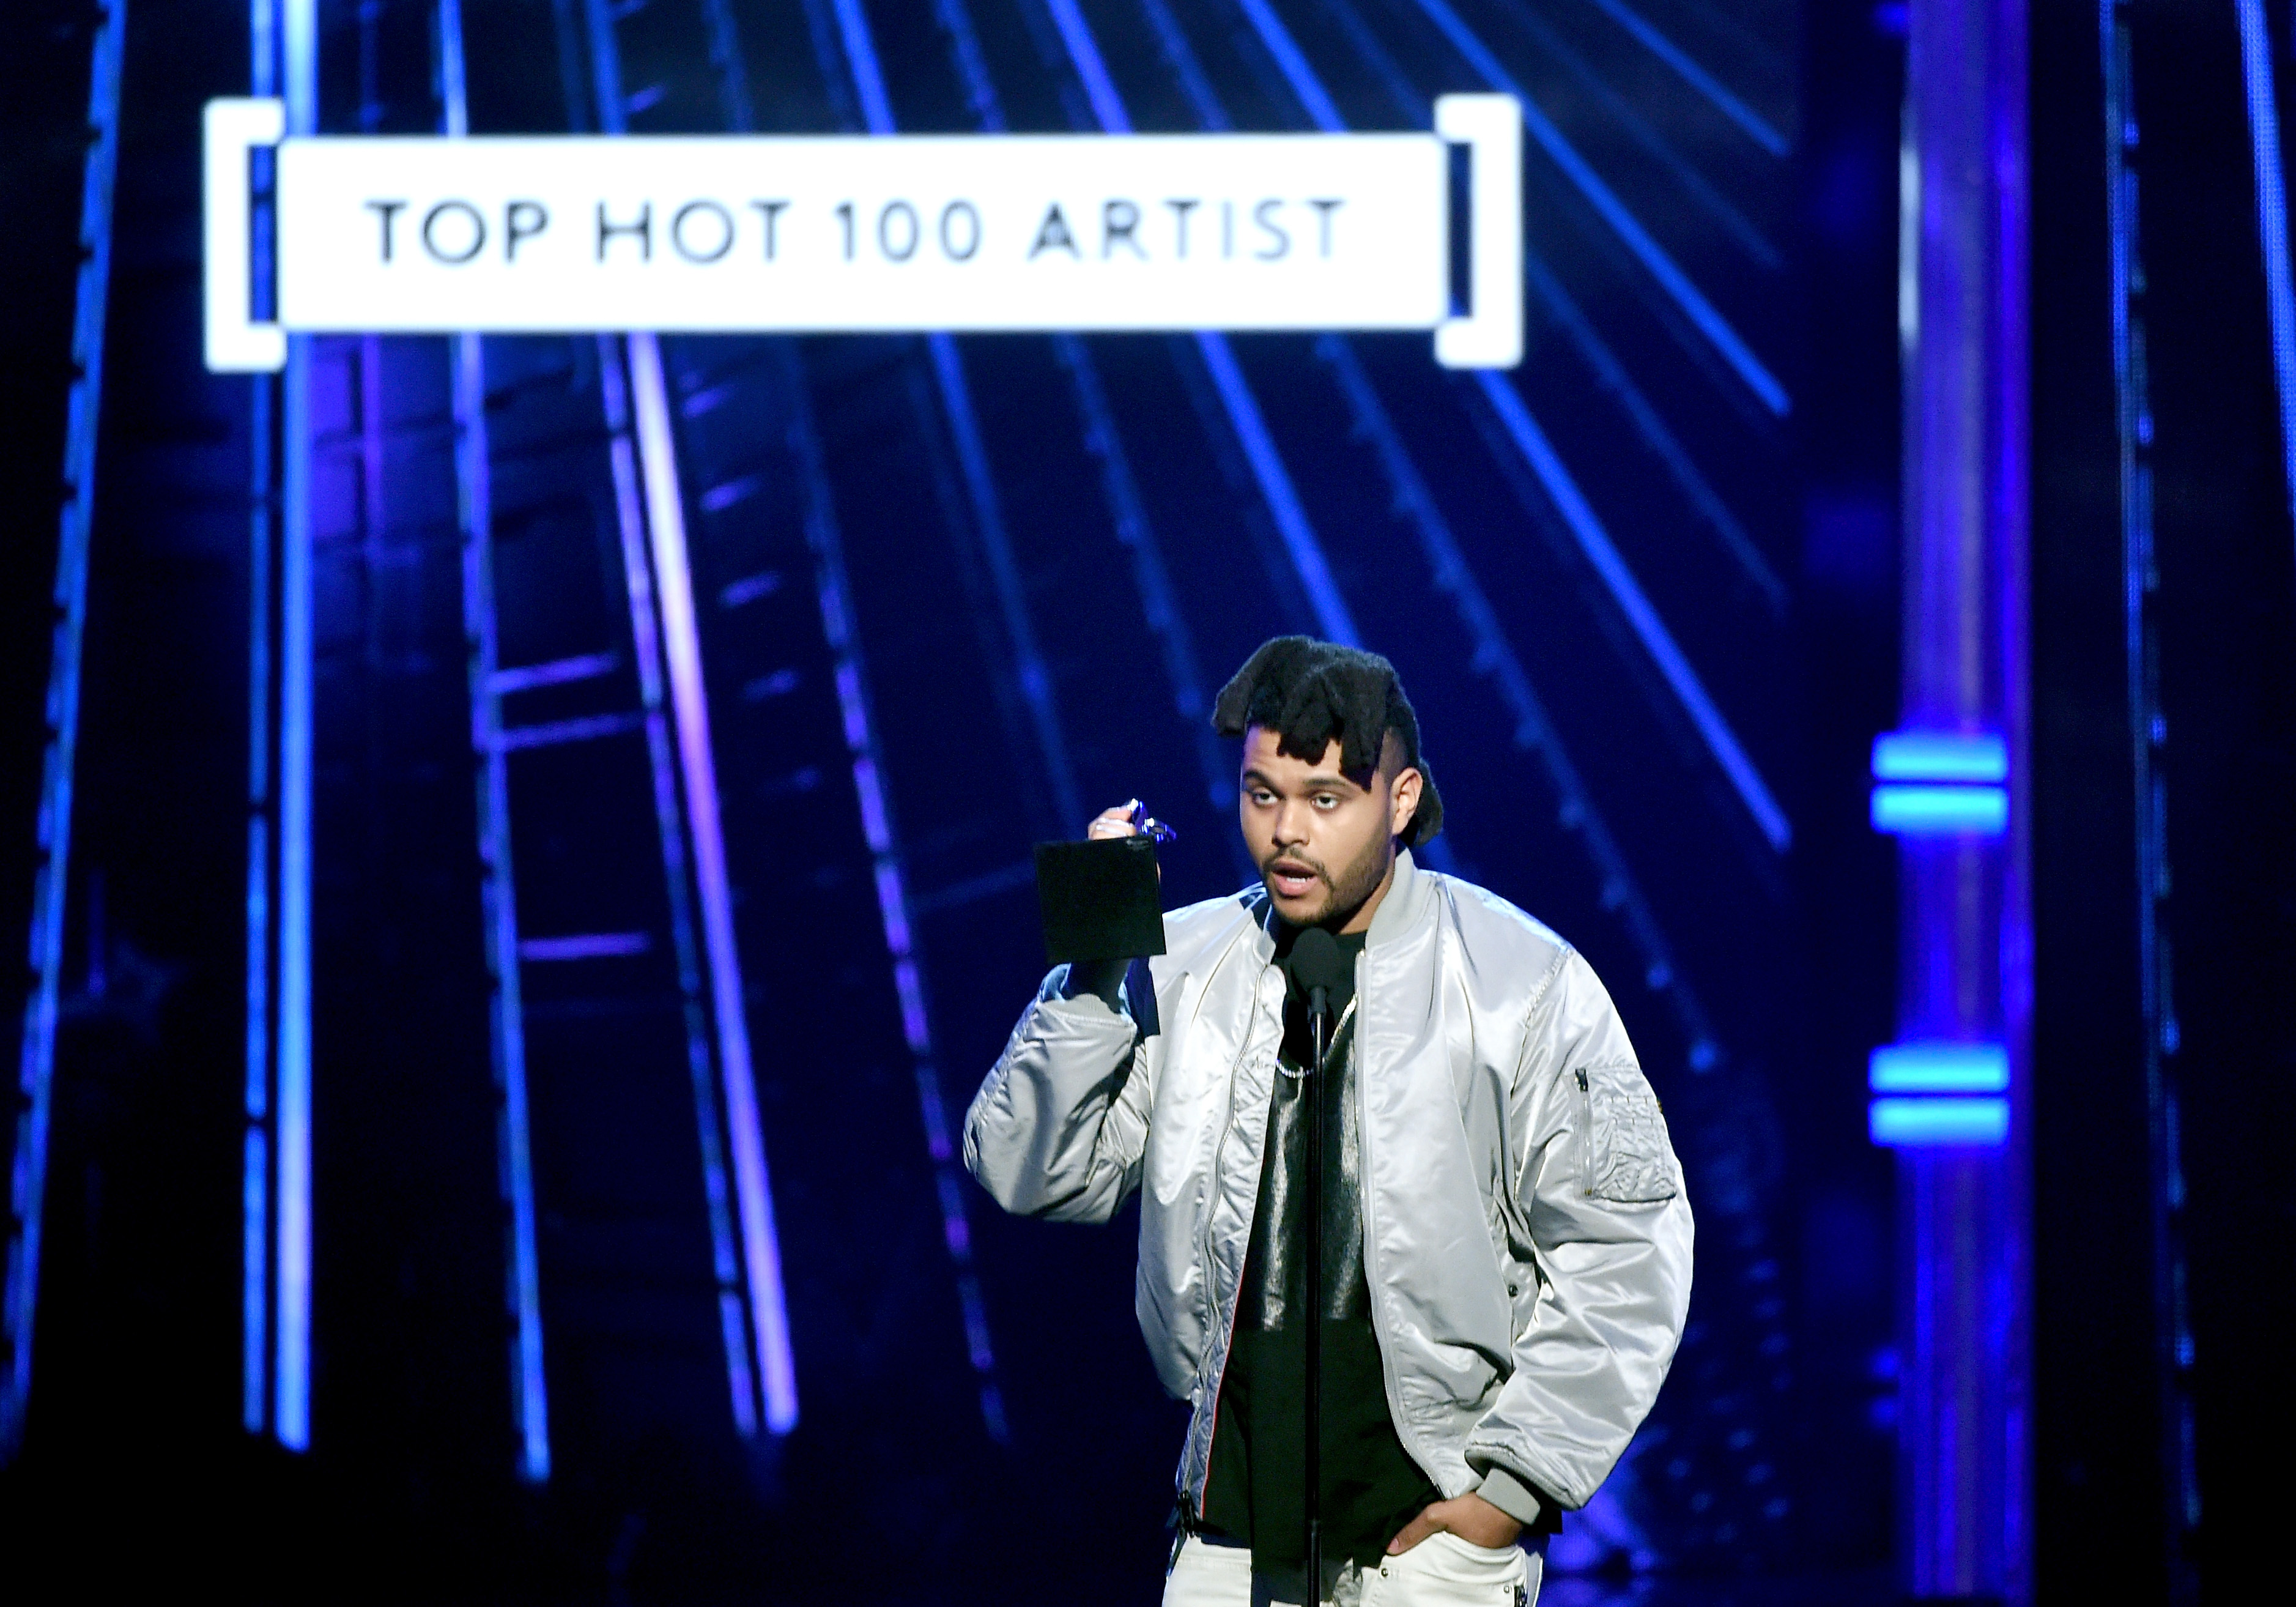 Recording artist The Weeknd accepts the Top Hot 100 Artist award onstage during the 2016 Billboard Music Awards at T-Mobile Arena on May 22, 2016 in Las Vegas, Nevada.